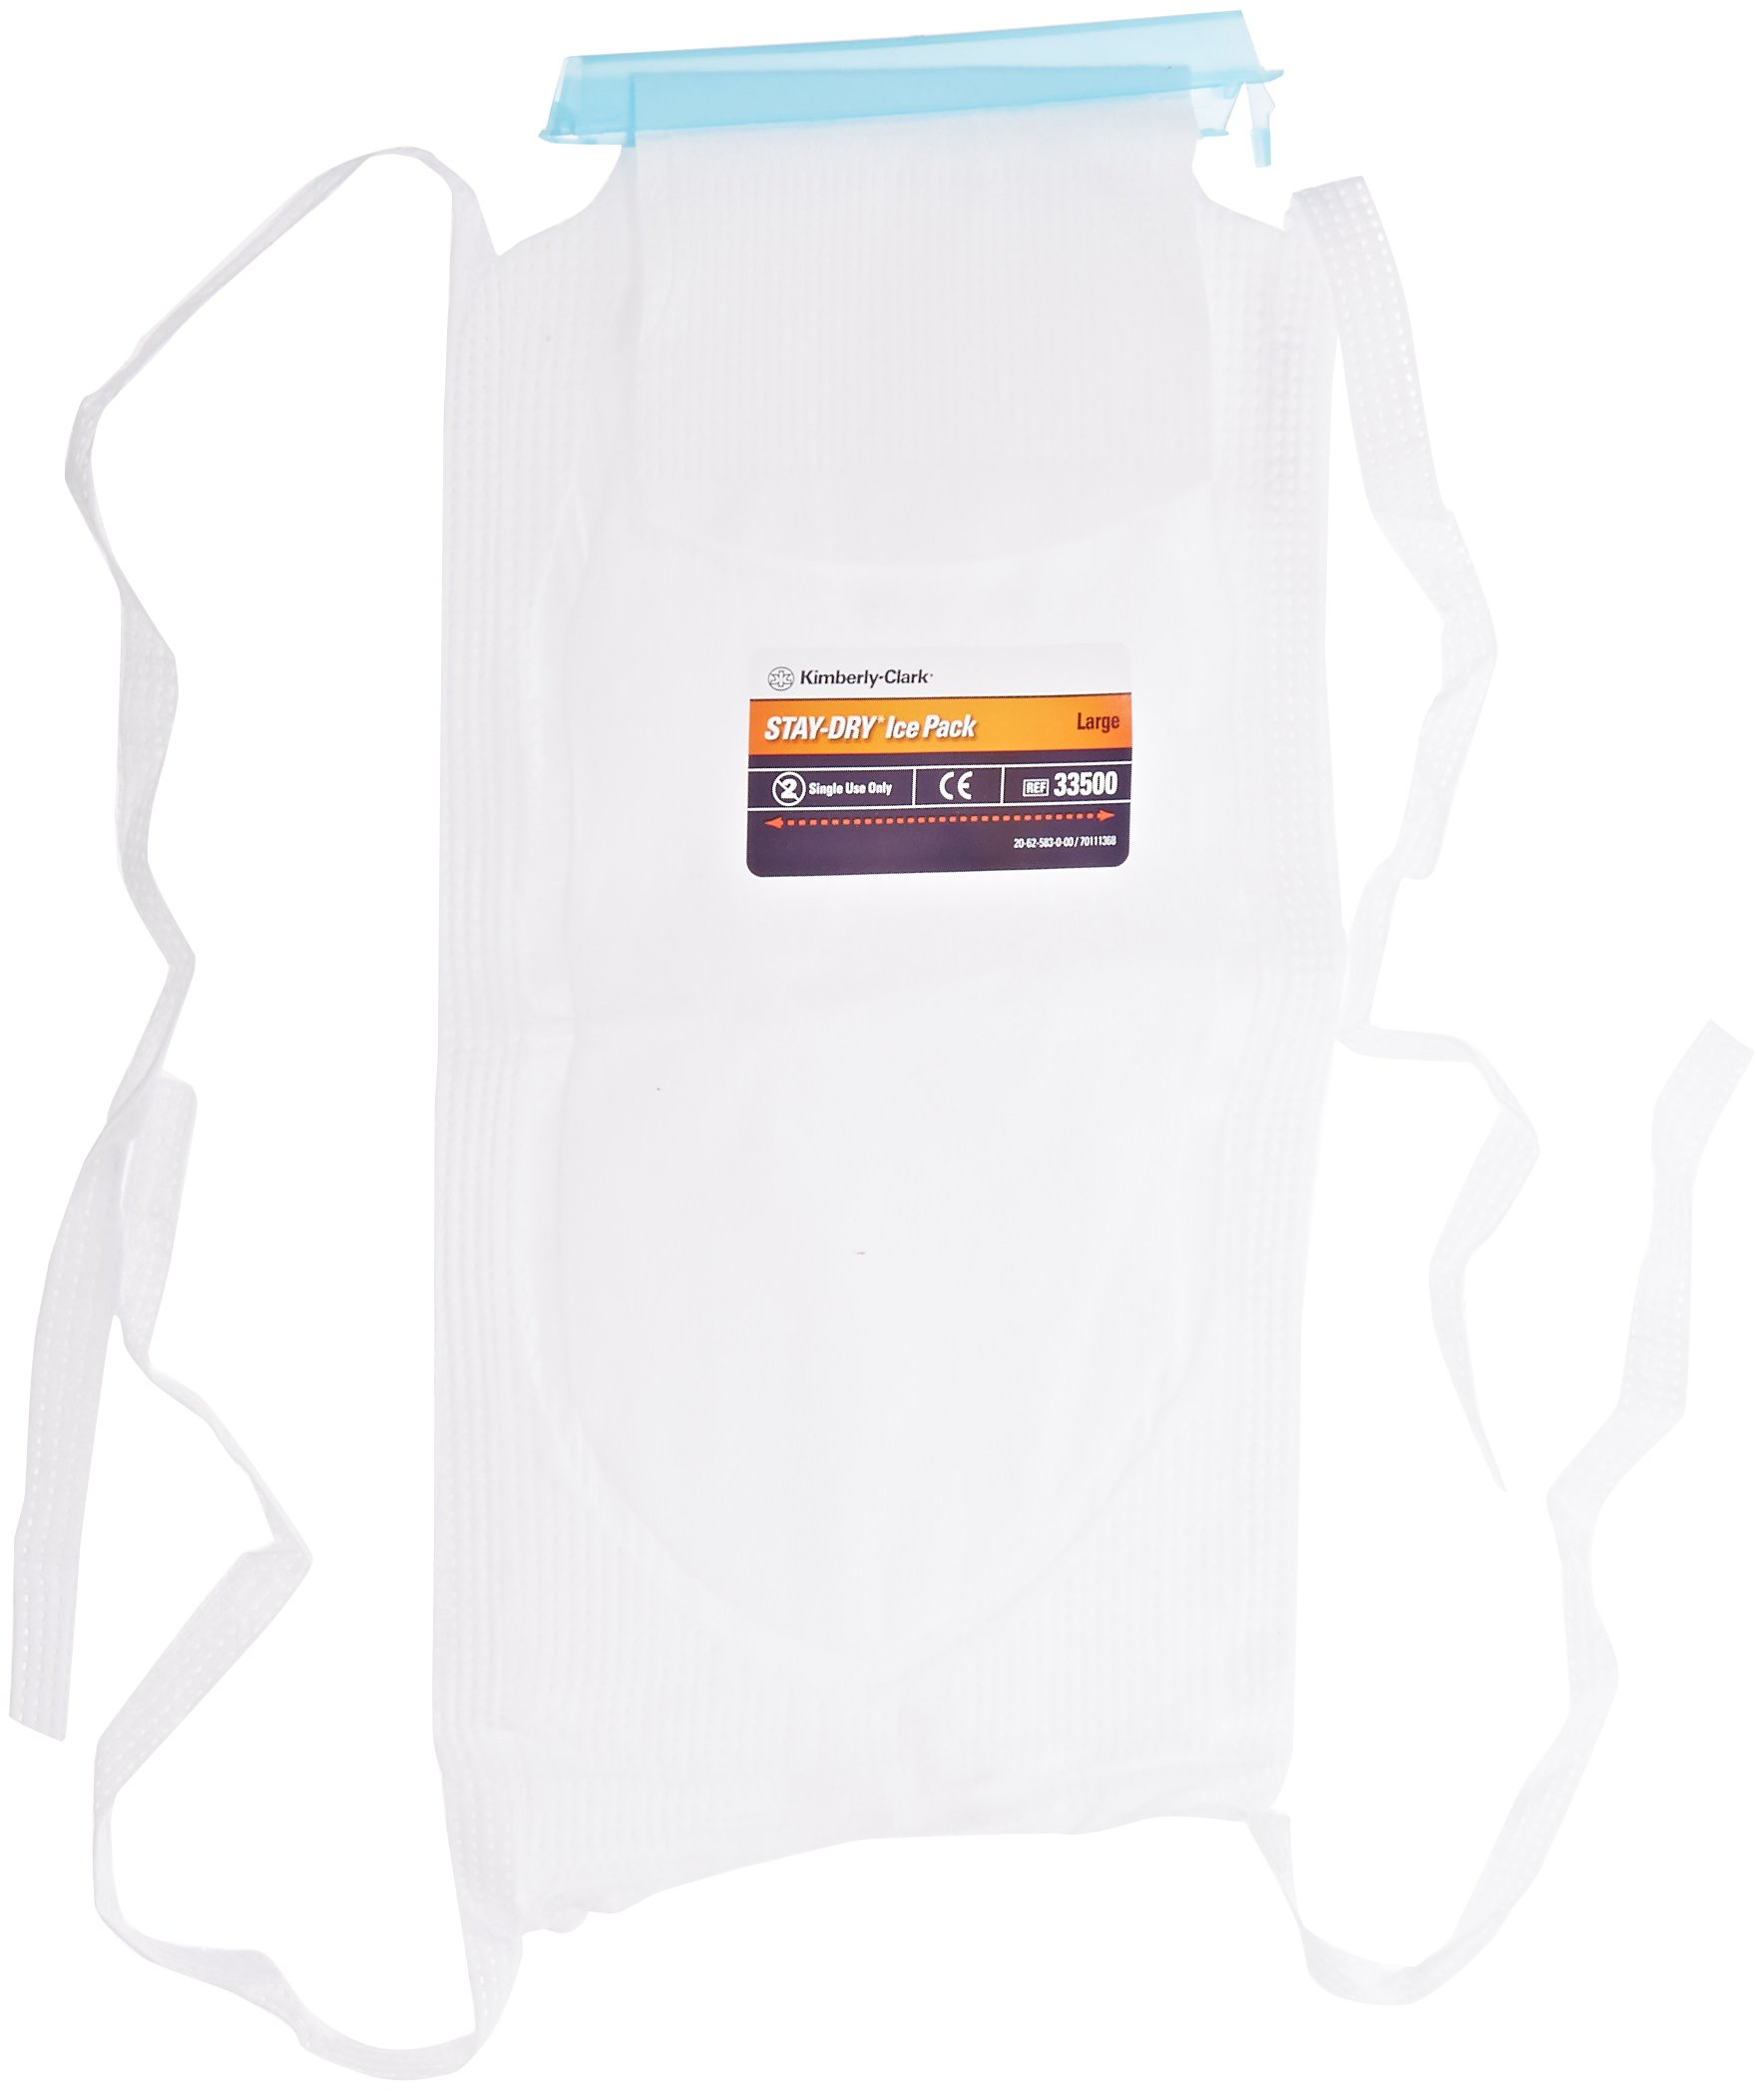 Halyard Health 33500 STAY-DRY Ice Pack, Large Size (Case of 50) by Halyard Health (Image #2)